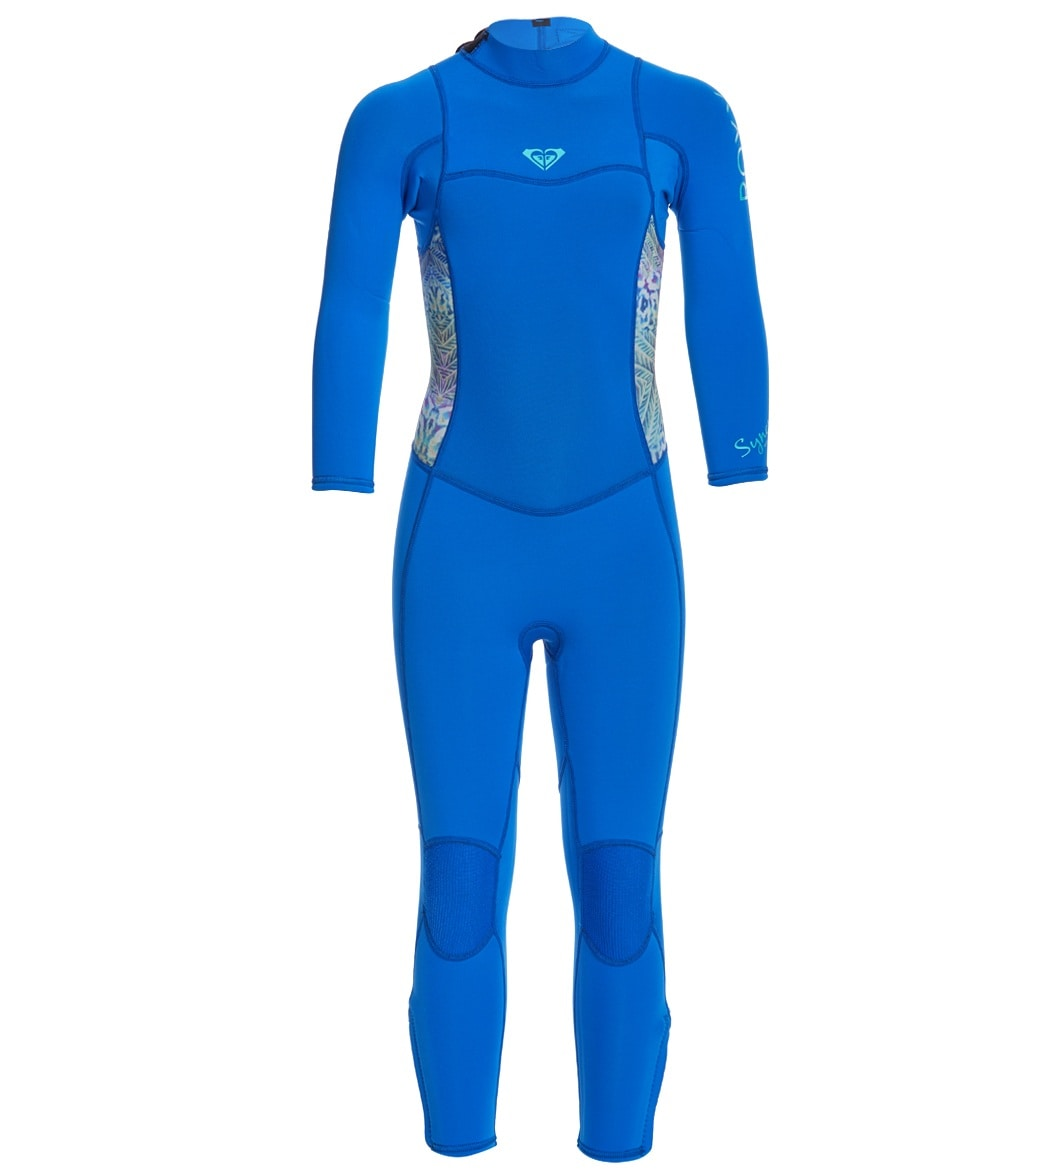 798bb4ad1b Roxy Girls  3 2mm Syncro Back Zip Fullsuit Wetsuit at SwimOutlet.com ...